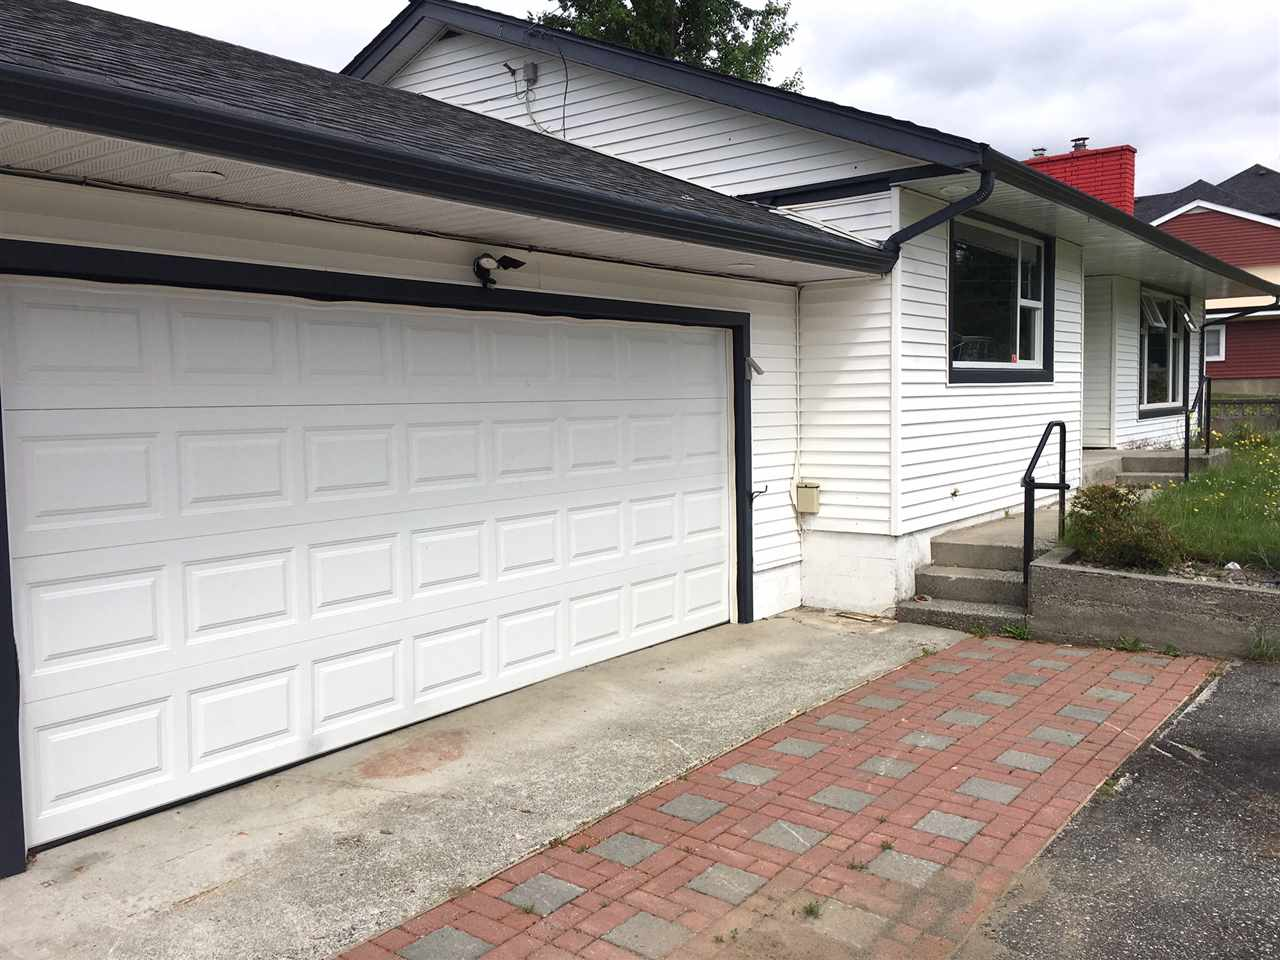 Detached at 2593 PARKVIEW STREET, Abbotsford, British Columbia. Image 1